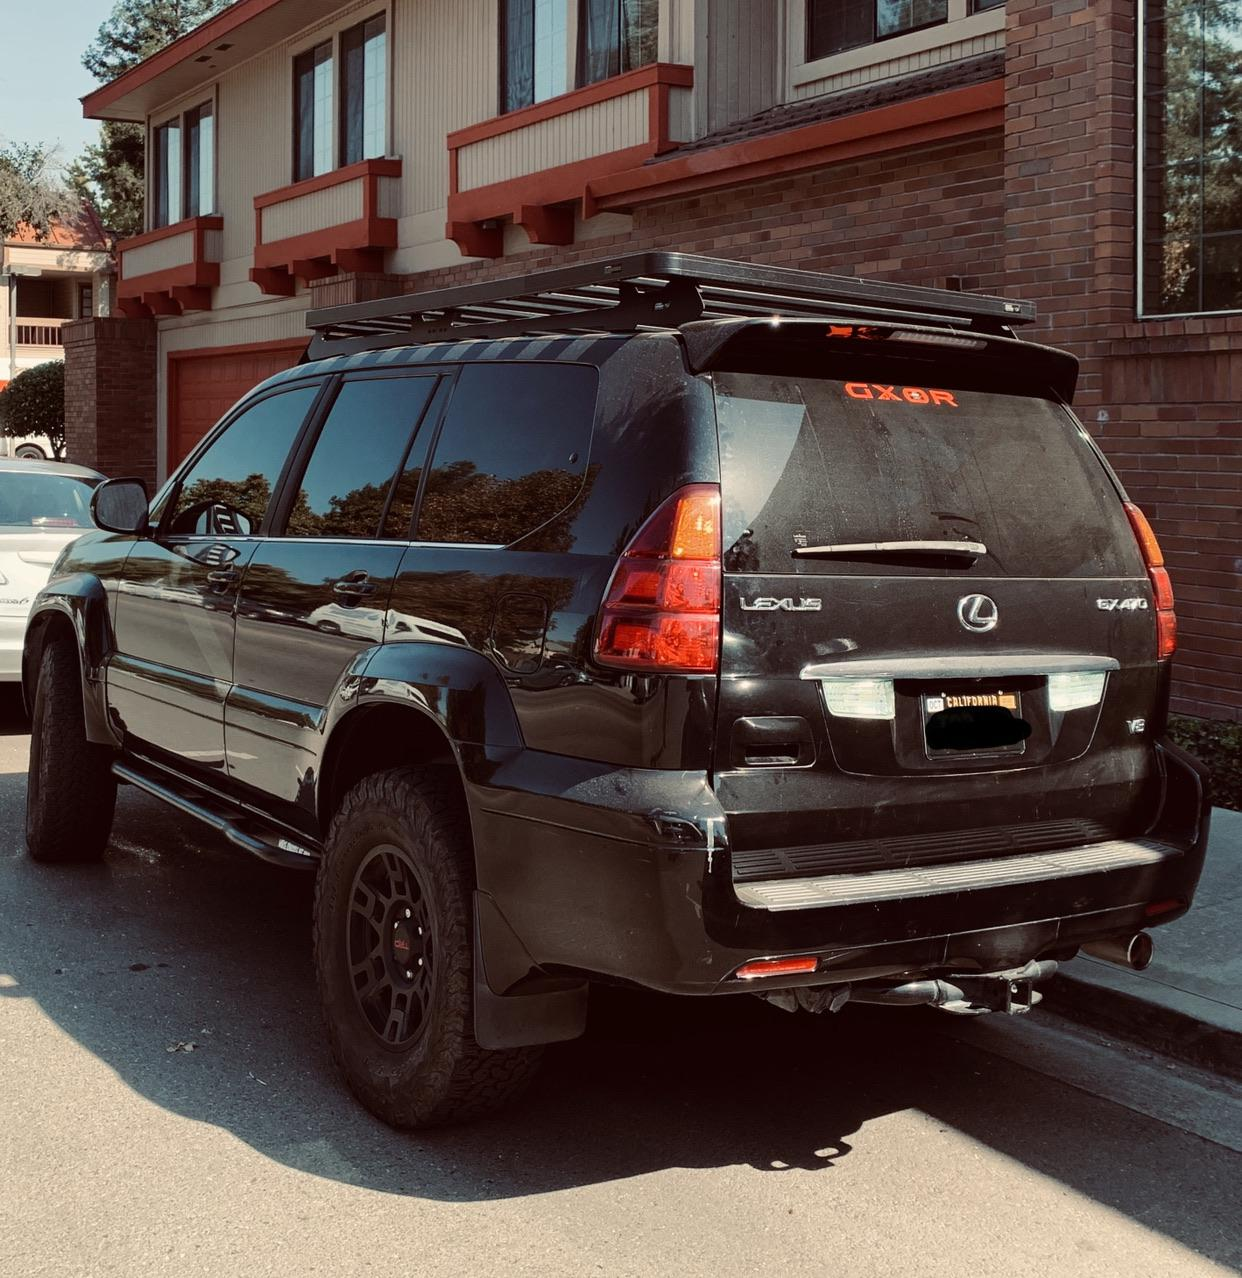 gx470 with a gxor decal spotted in the